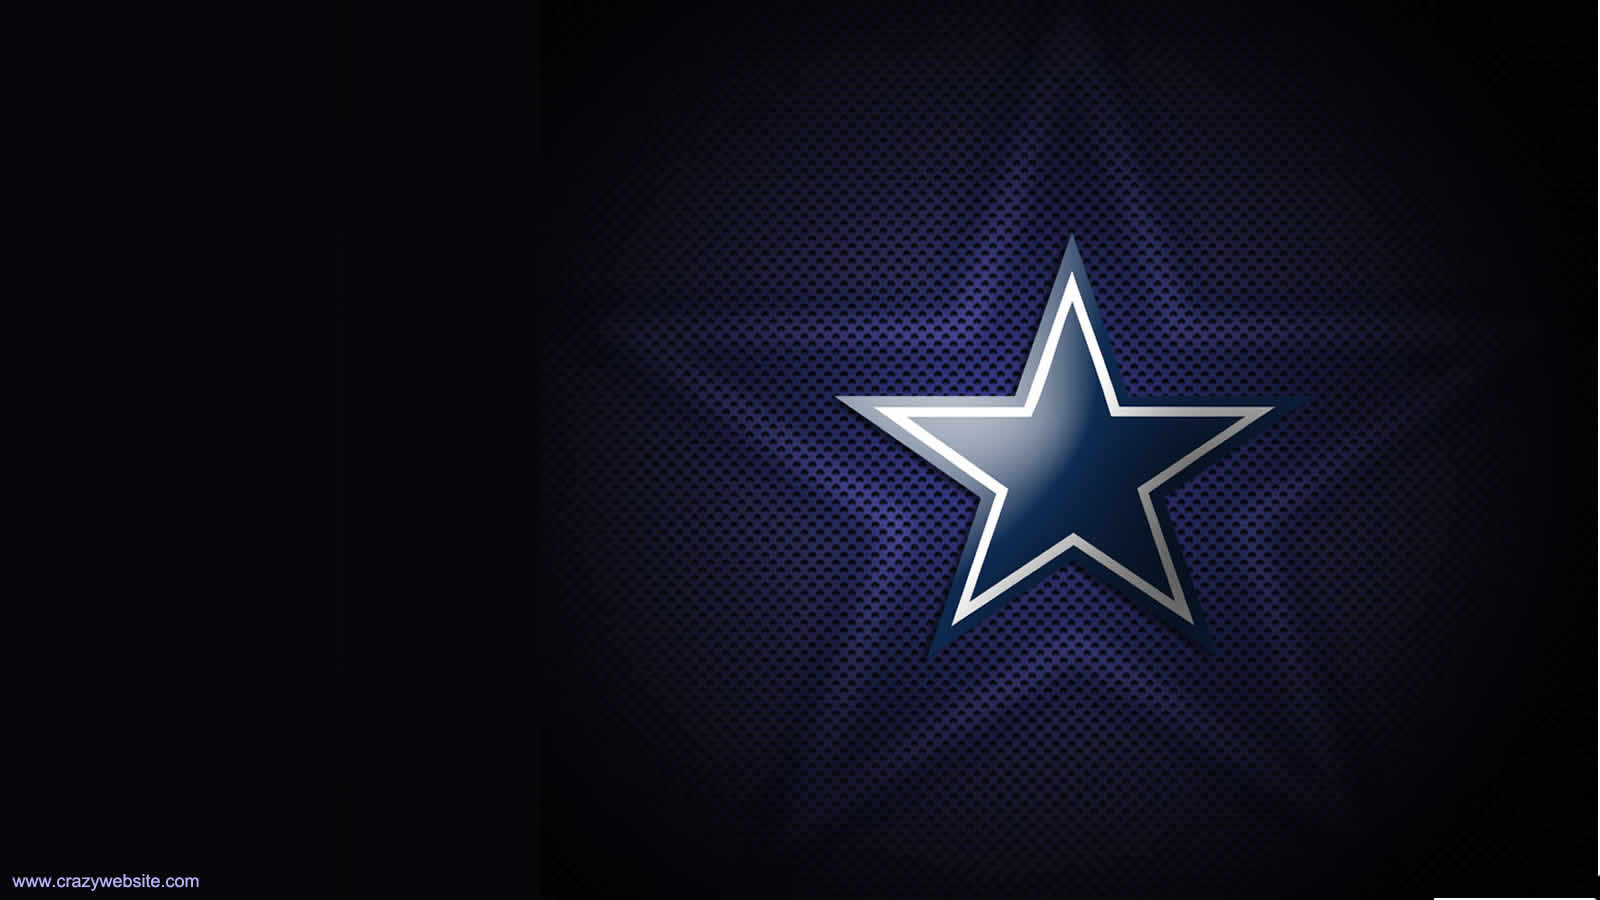 Dallas cowboys clipart header. Free football graphics to